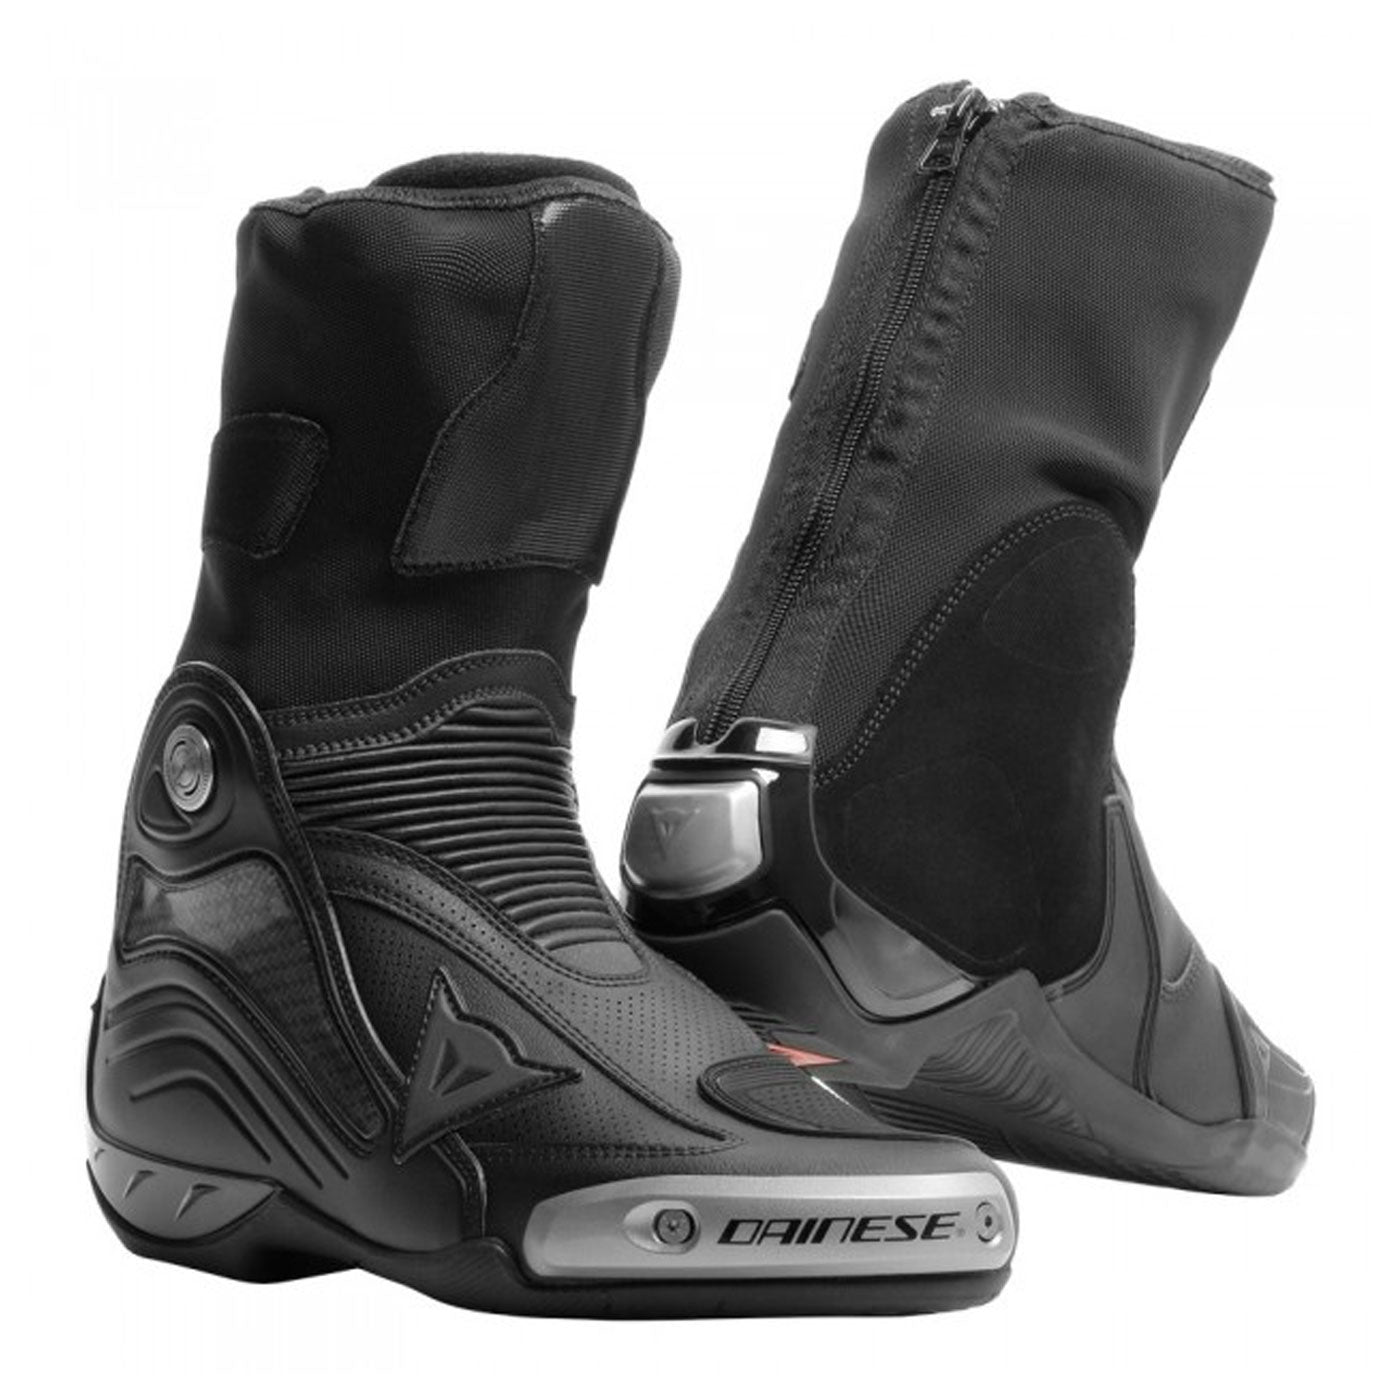 DAINESE AXIAL D1 AIR Boots